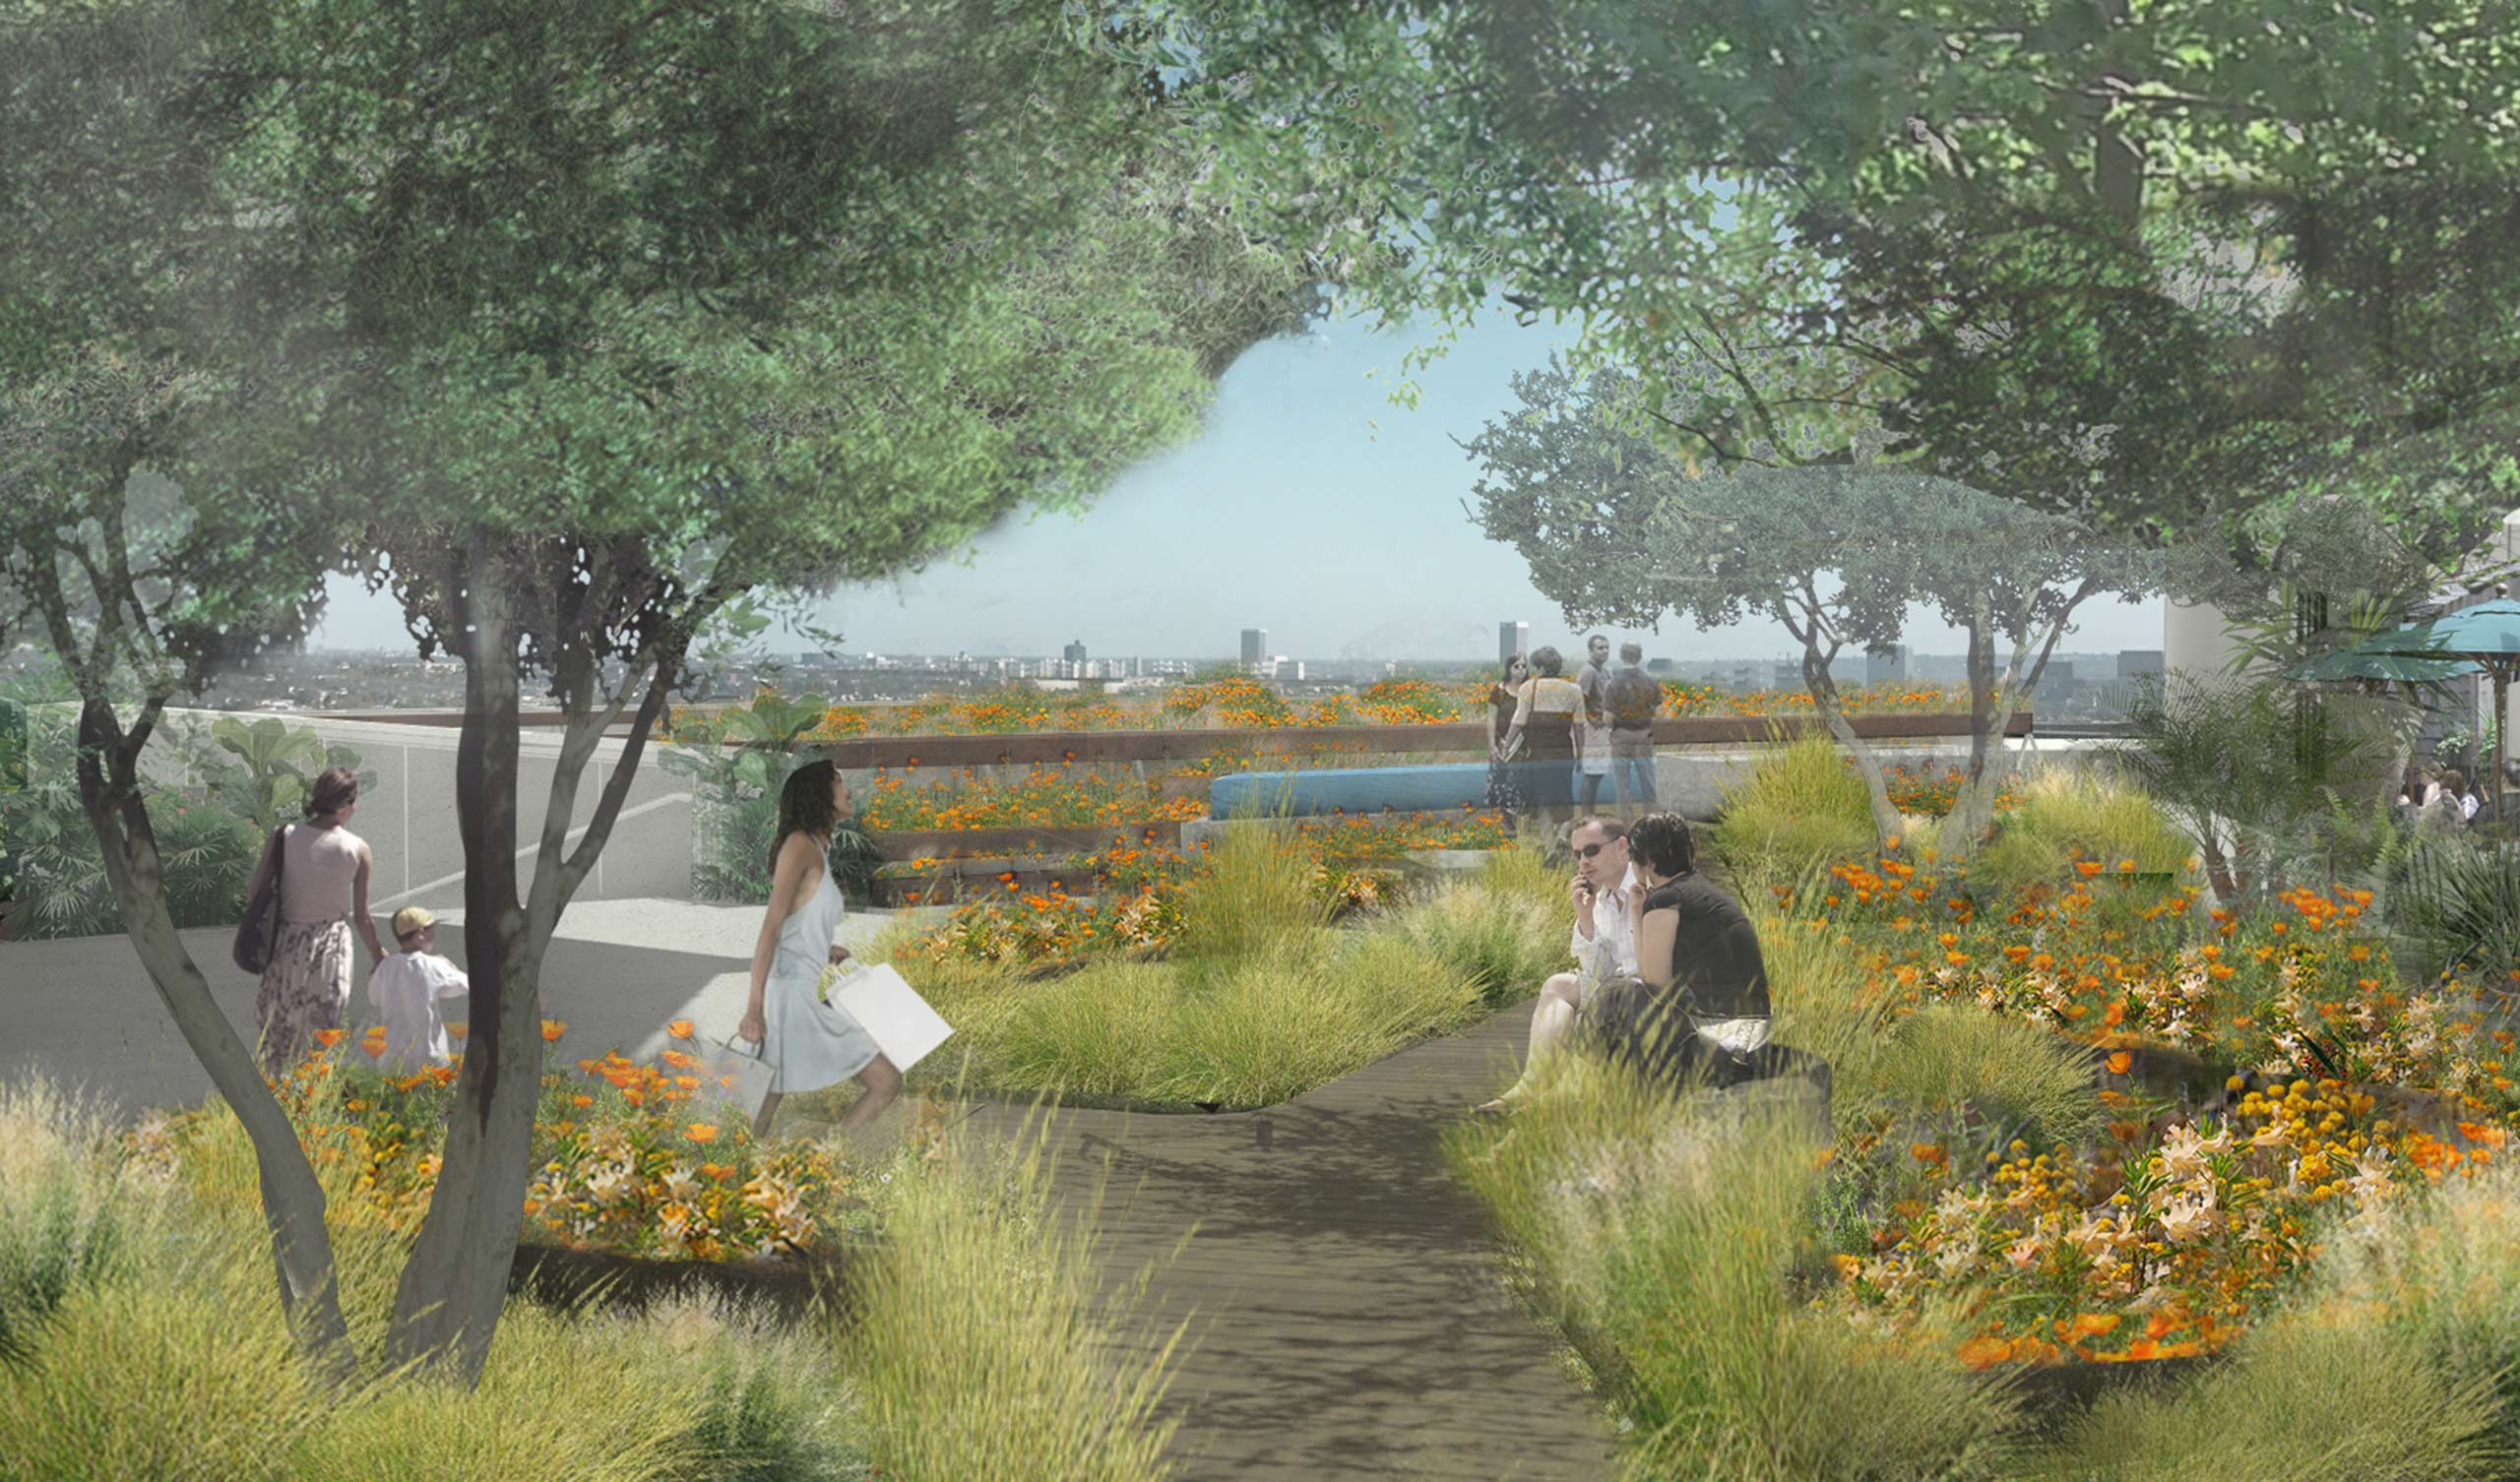 concept rendering of wooden patio with planters and benches